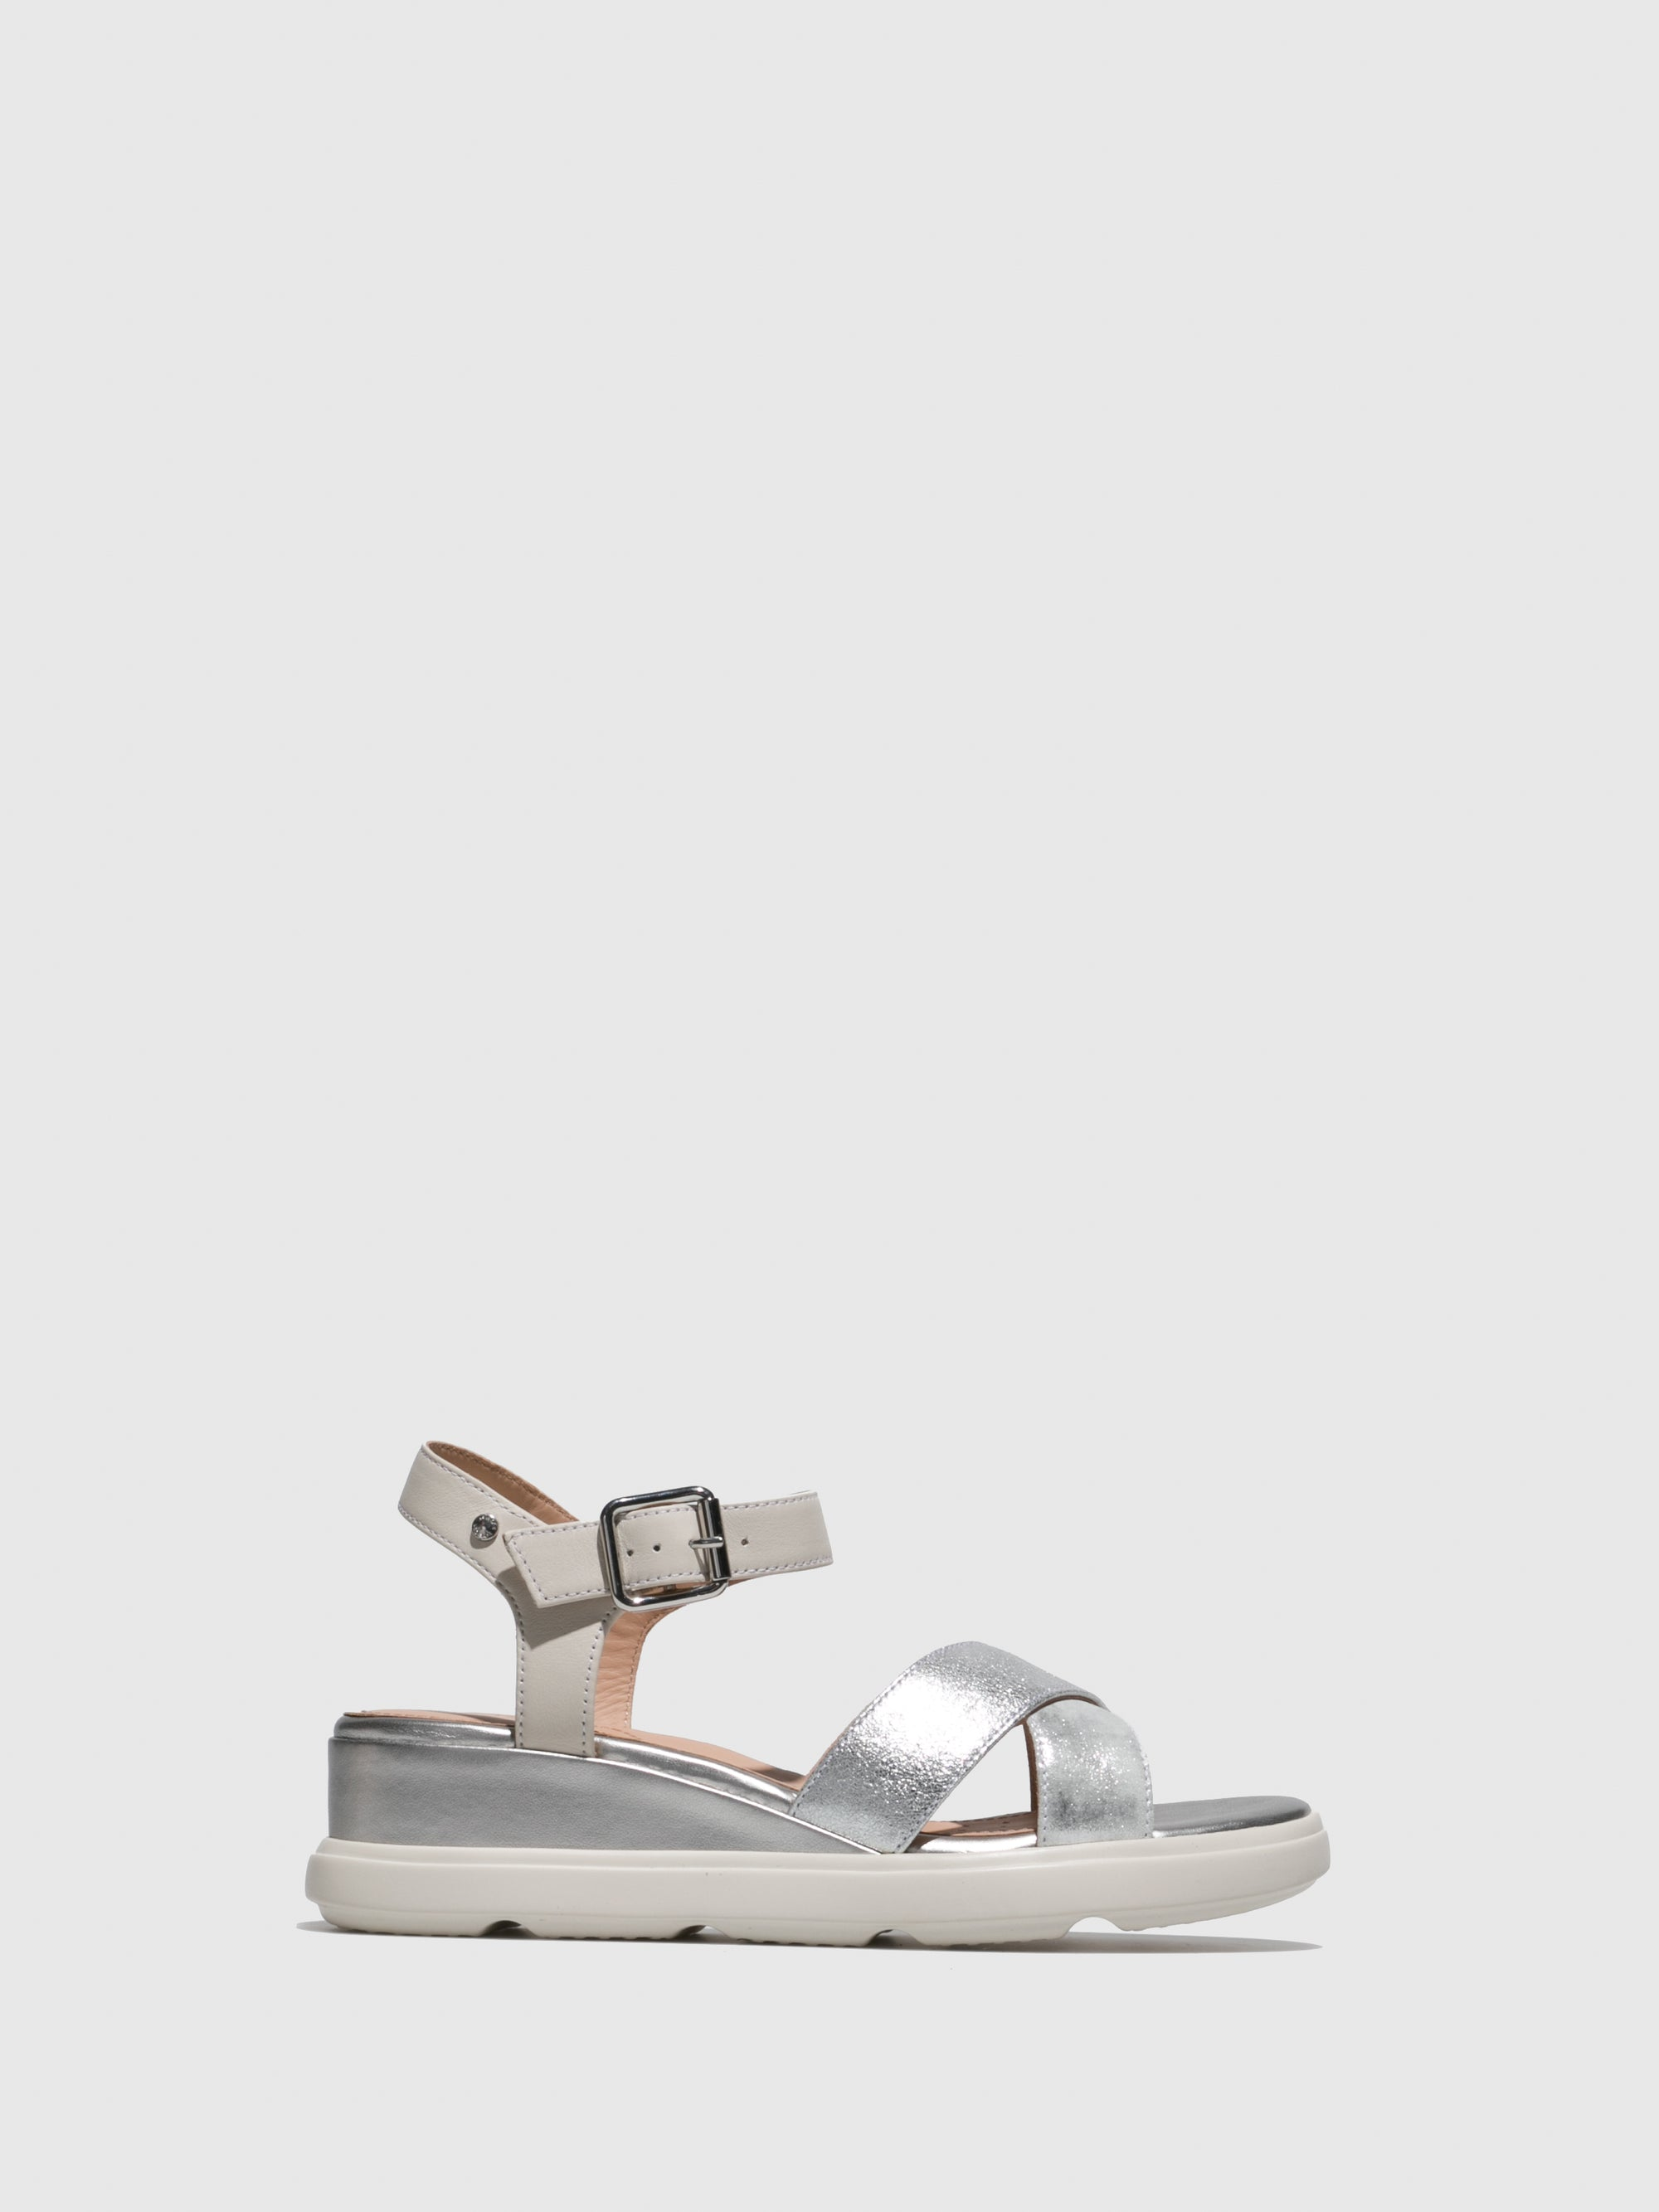 Geox Silver Wedge Sandals